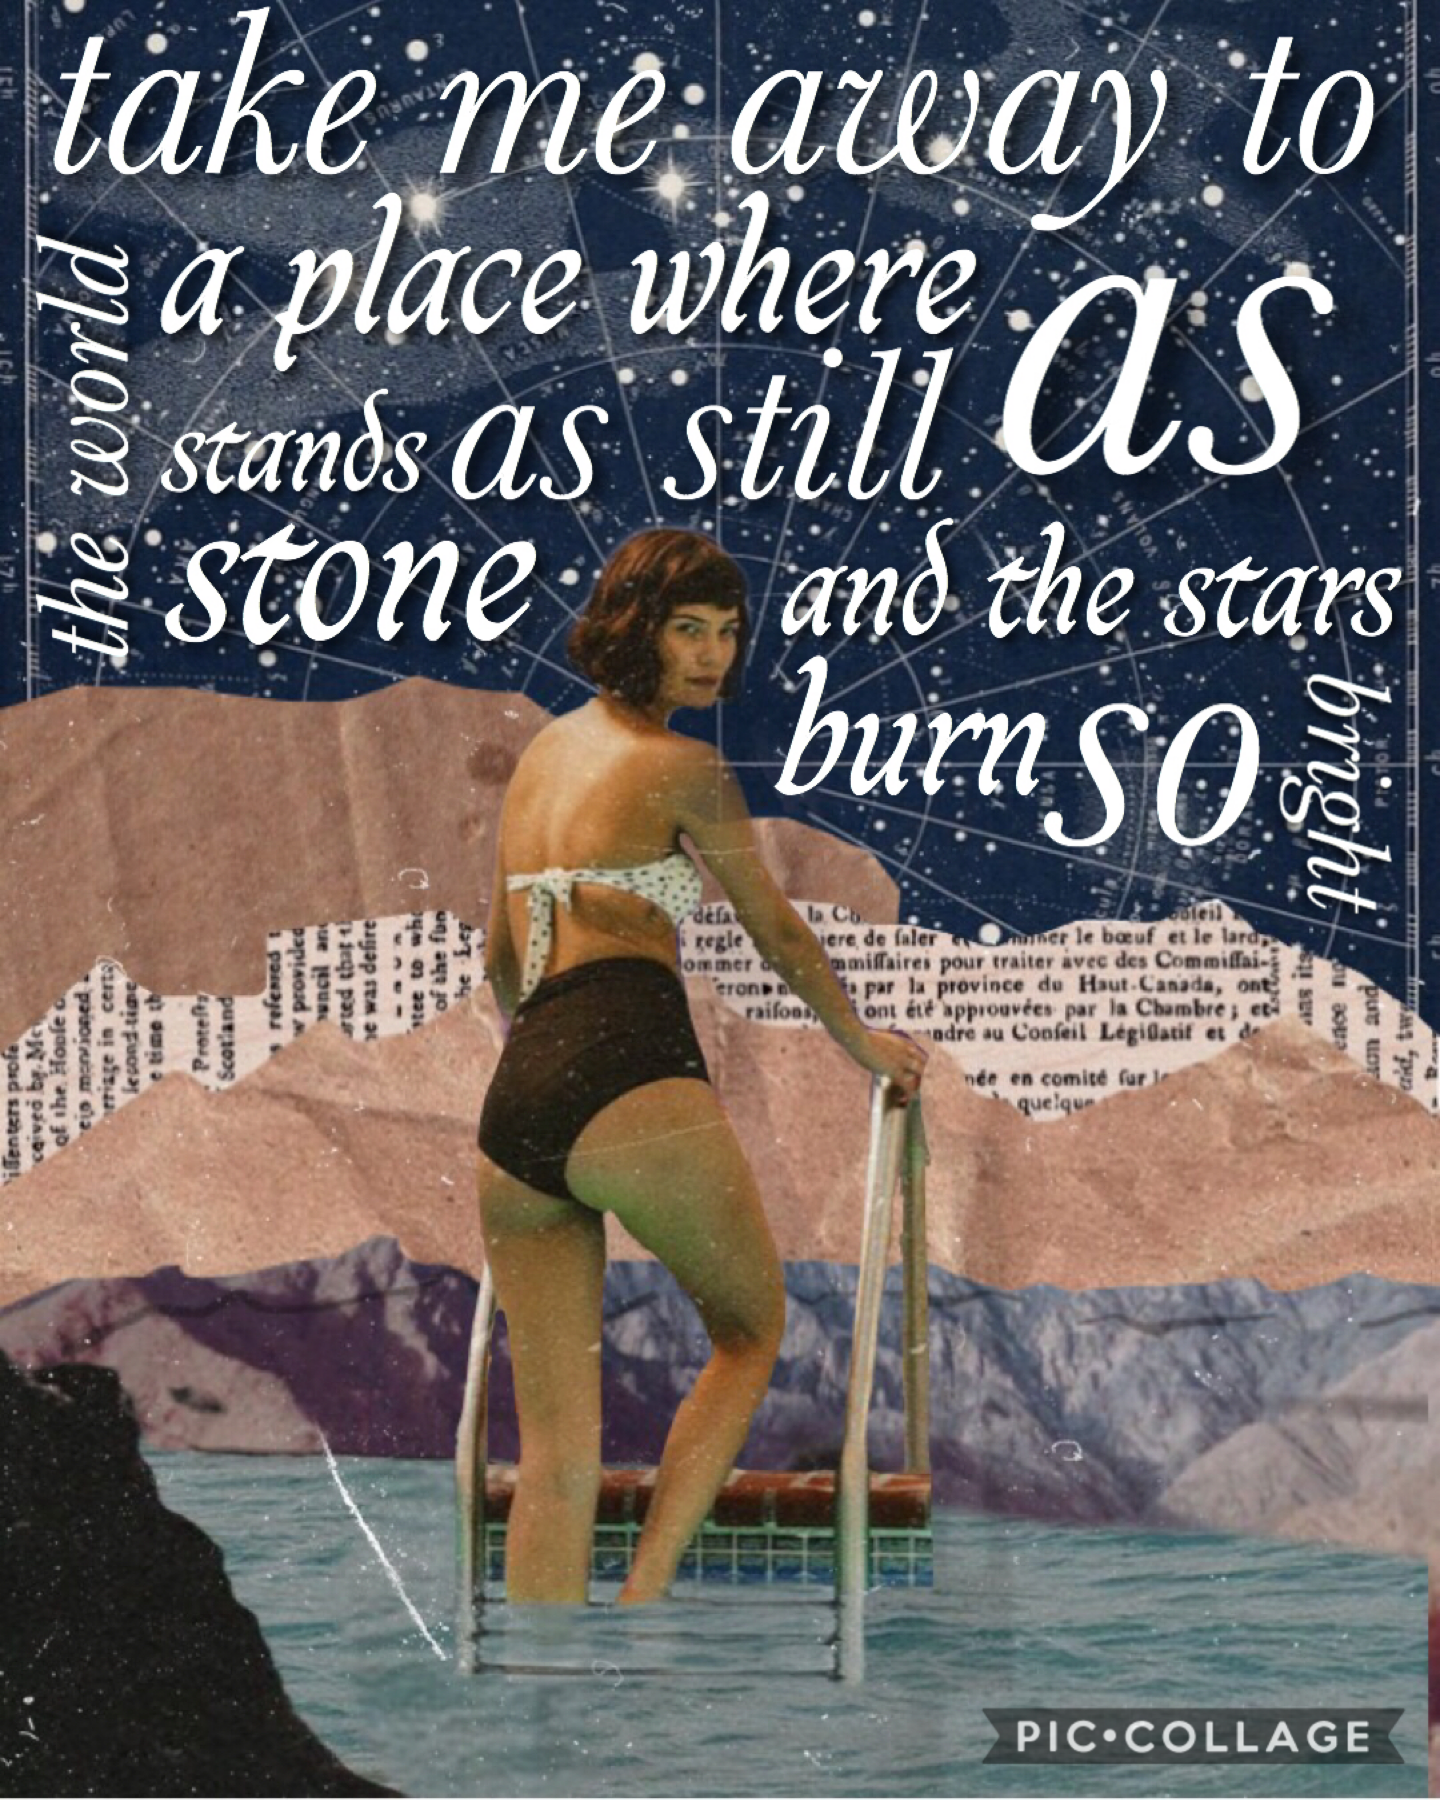 17th May 2020 Simple collage and a quote that I made up to fit in the space😌 It's super late now were I live and I just spent so long on this so now I need to go sleep ahaha